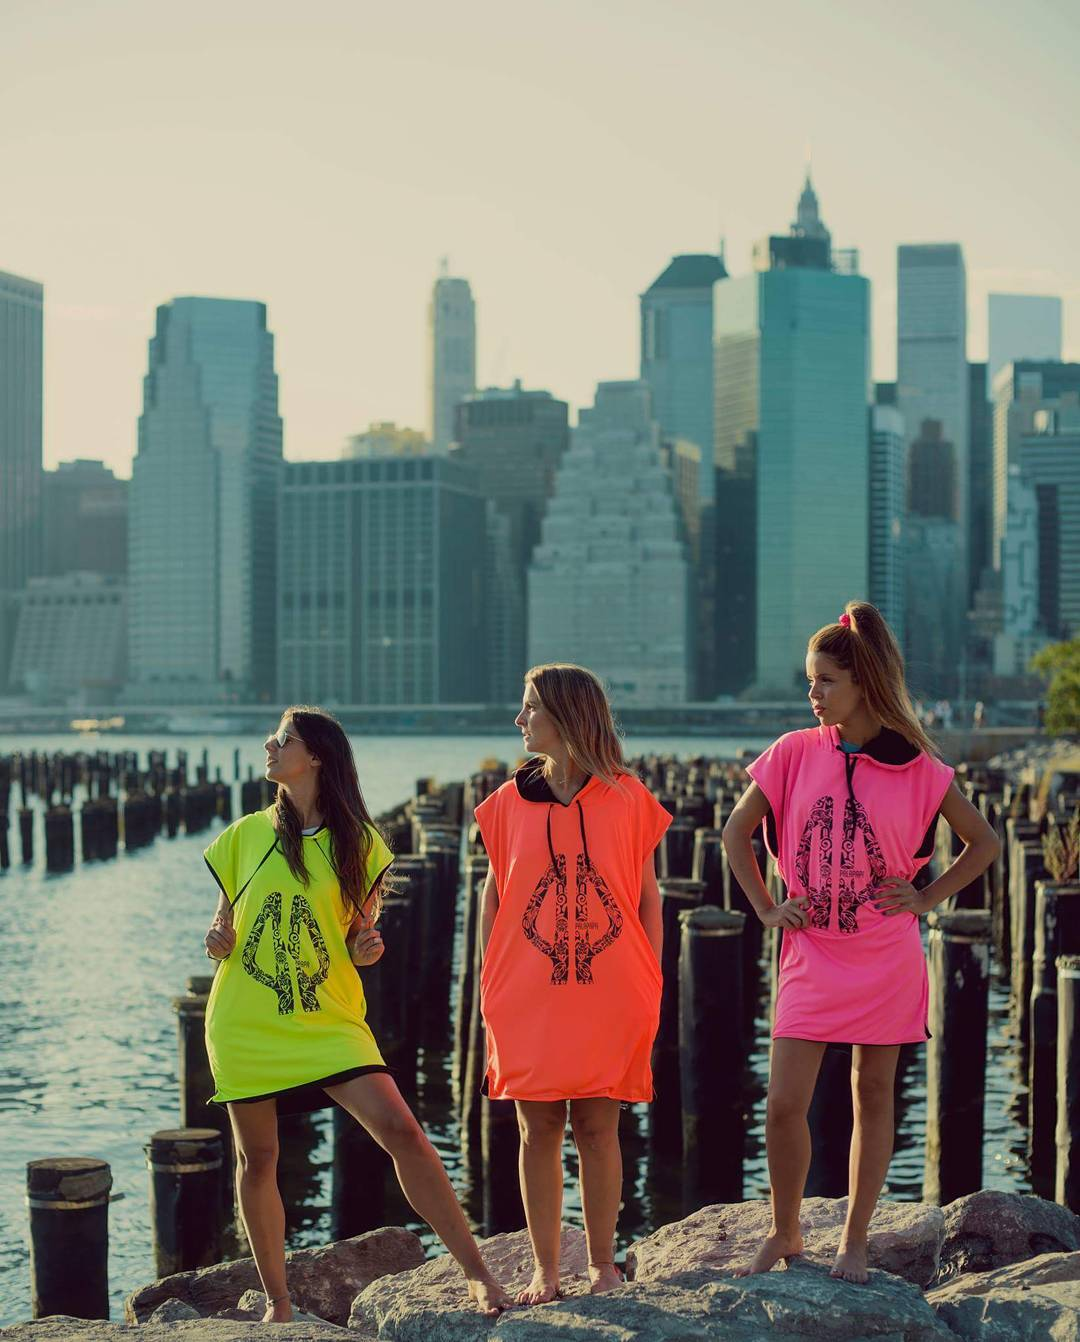 Wherever you go, take your dreams ! °•○●Make it easy●○•° #nyc #girls #rule #surf #beach #spring #color #clothes #pink #orange #yellow #city #sports #palapapa #session #collection